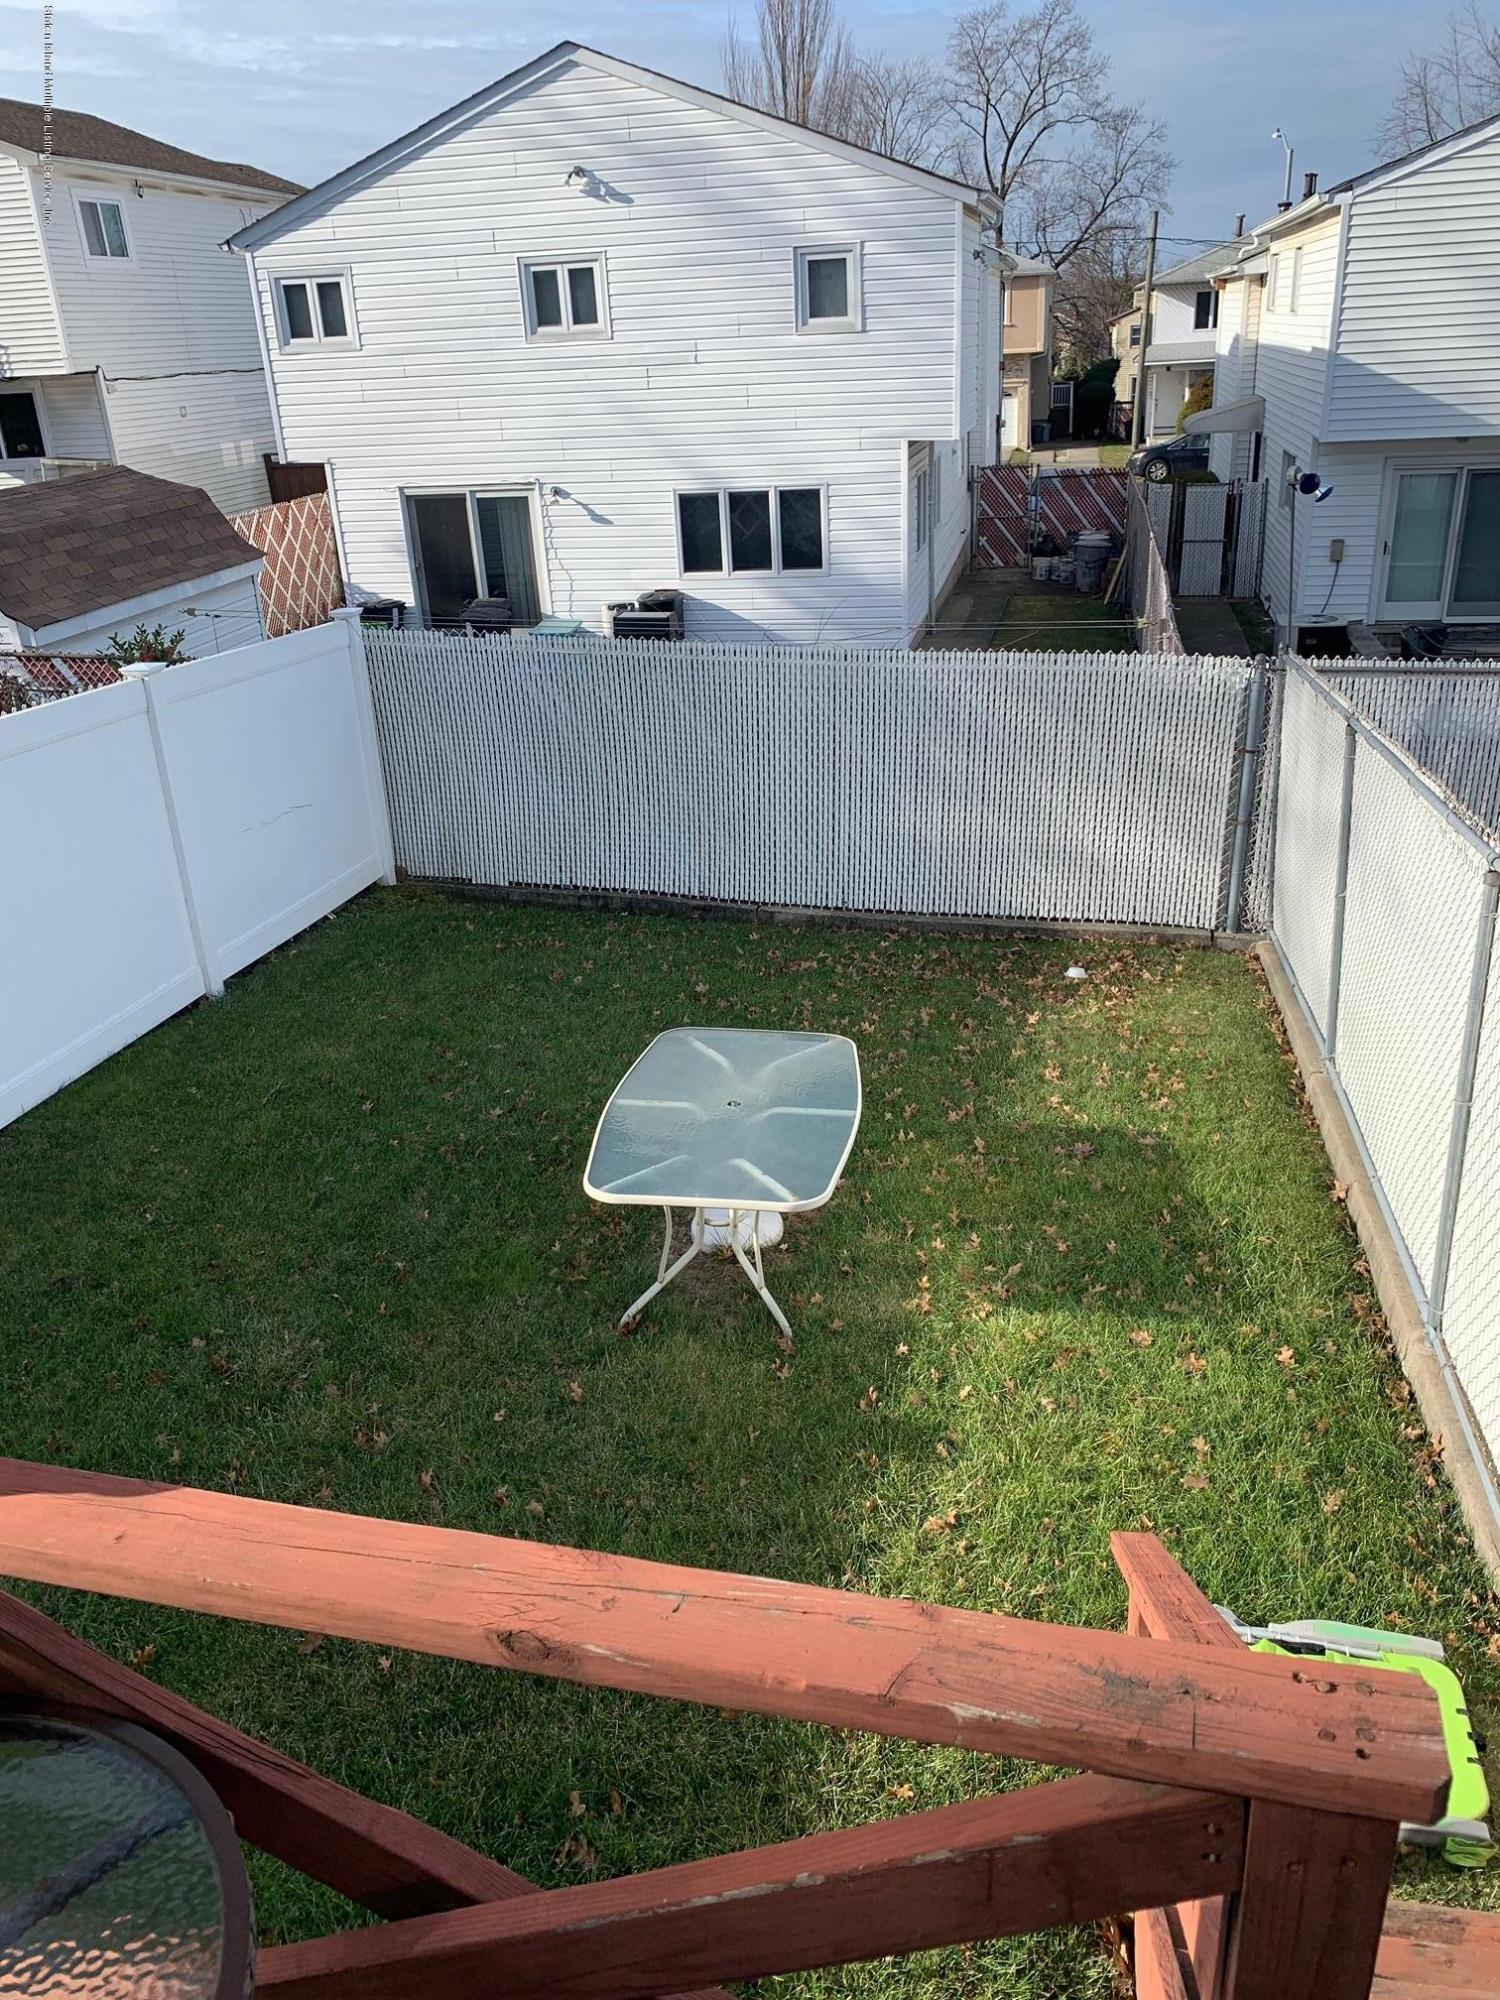 Single Family - Semi-Attached 68 Fillmore Avenue  Staten Island, NY 10314, MLS-1134808-9